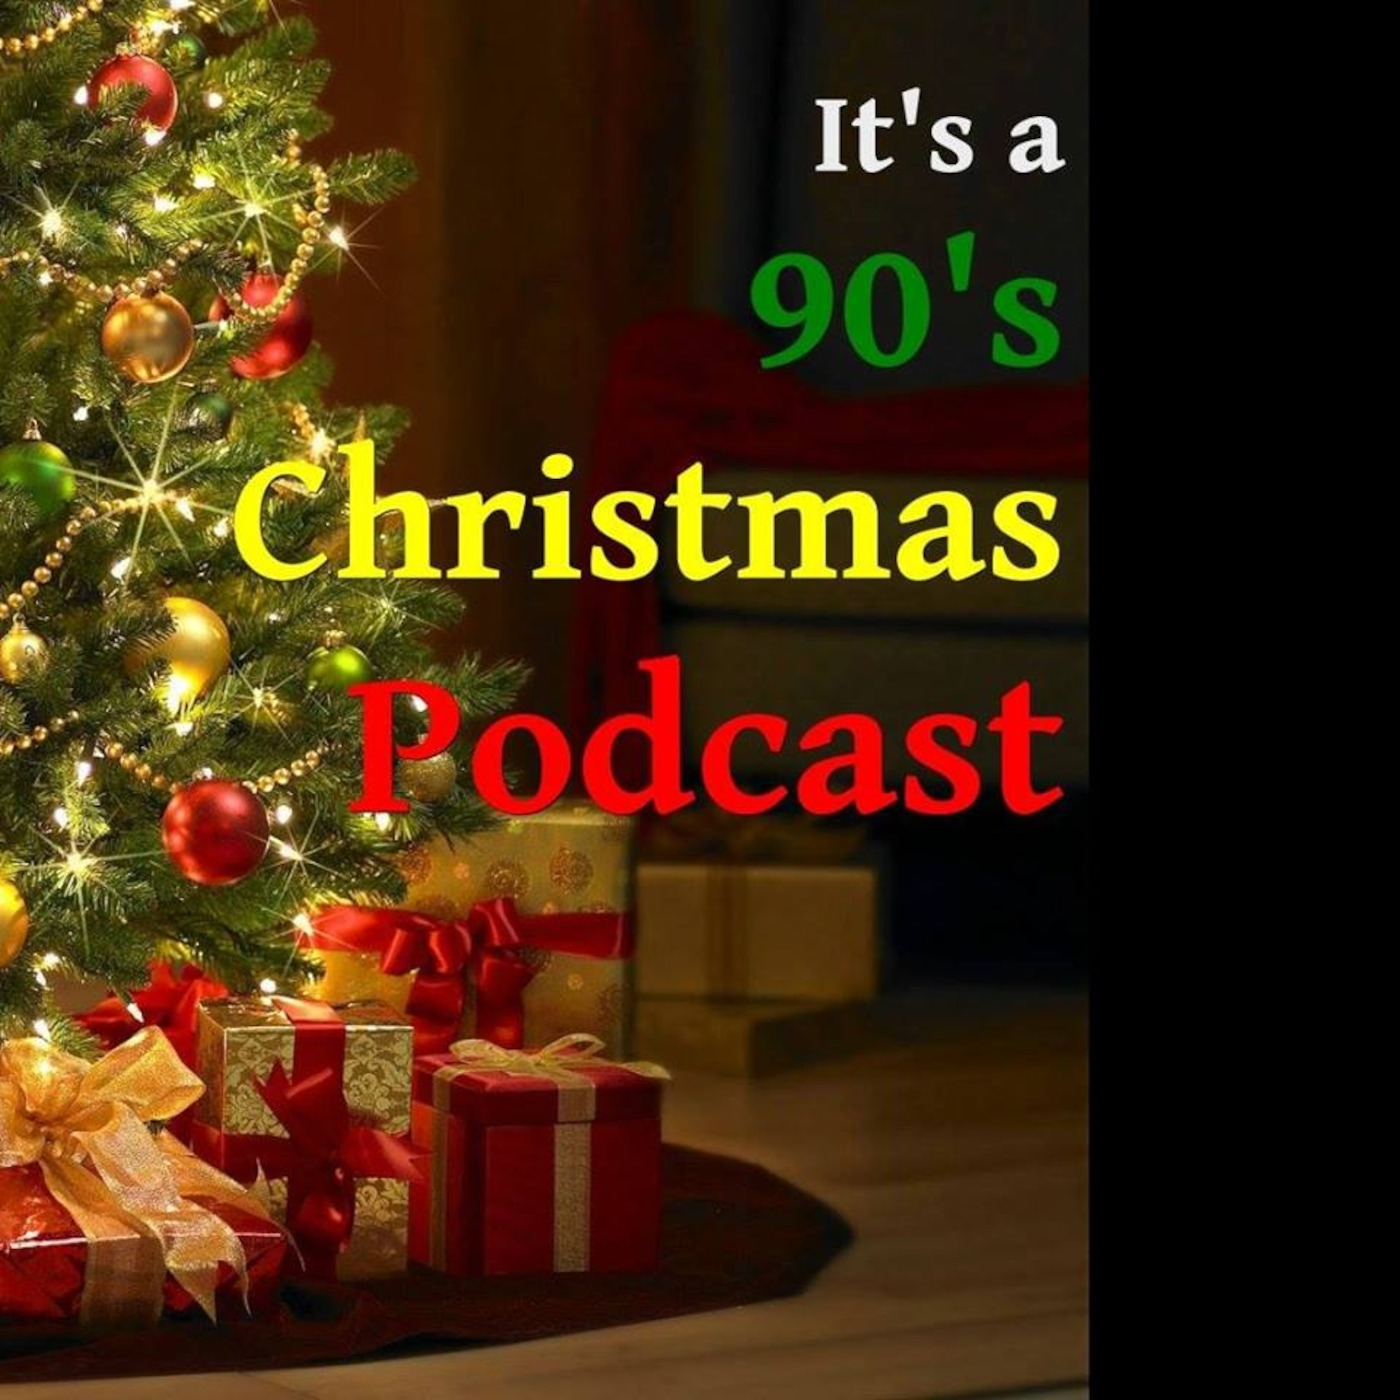 Christmas Podcast.12 The Munsters Scary Little Christmas 1996 It S A 90 S